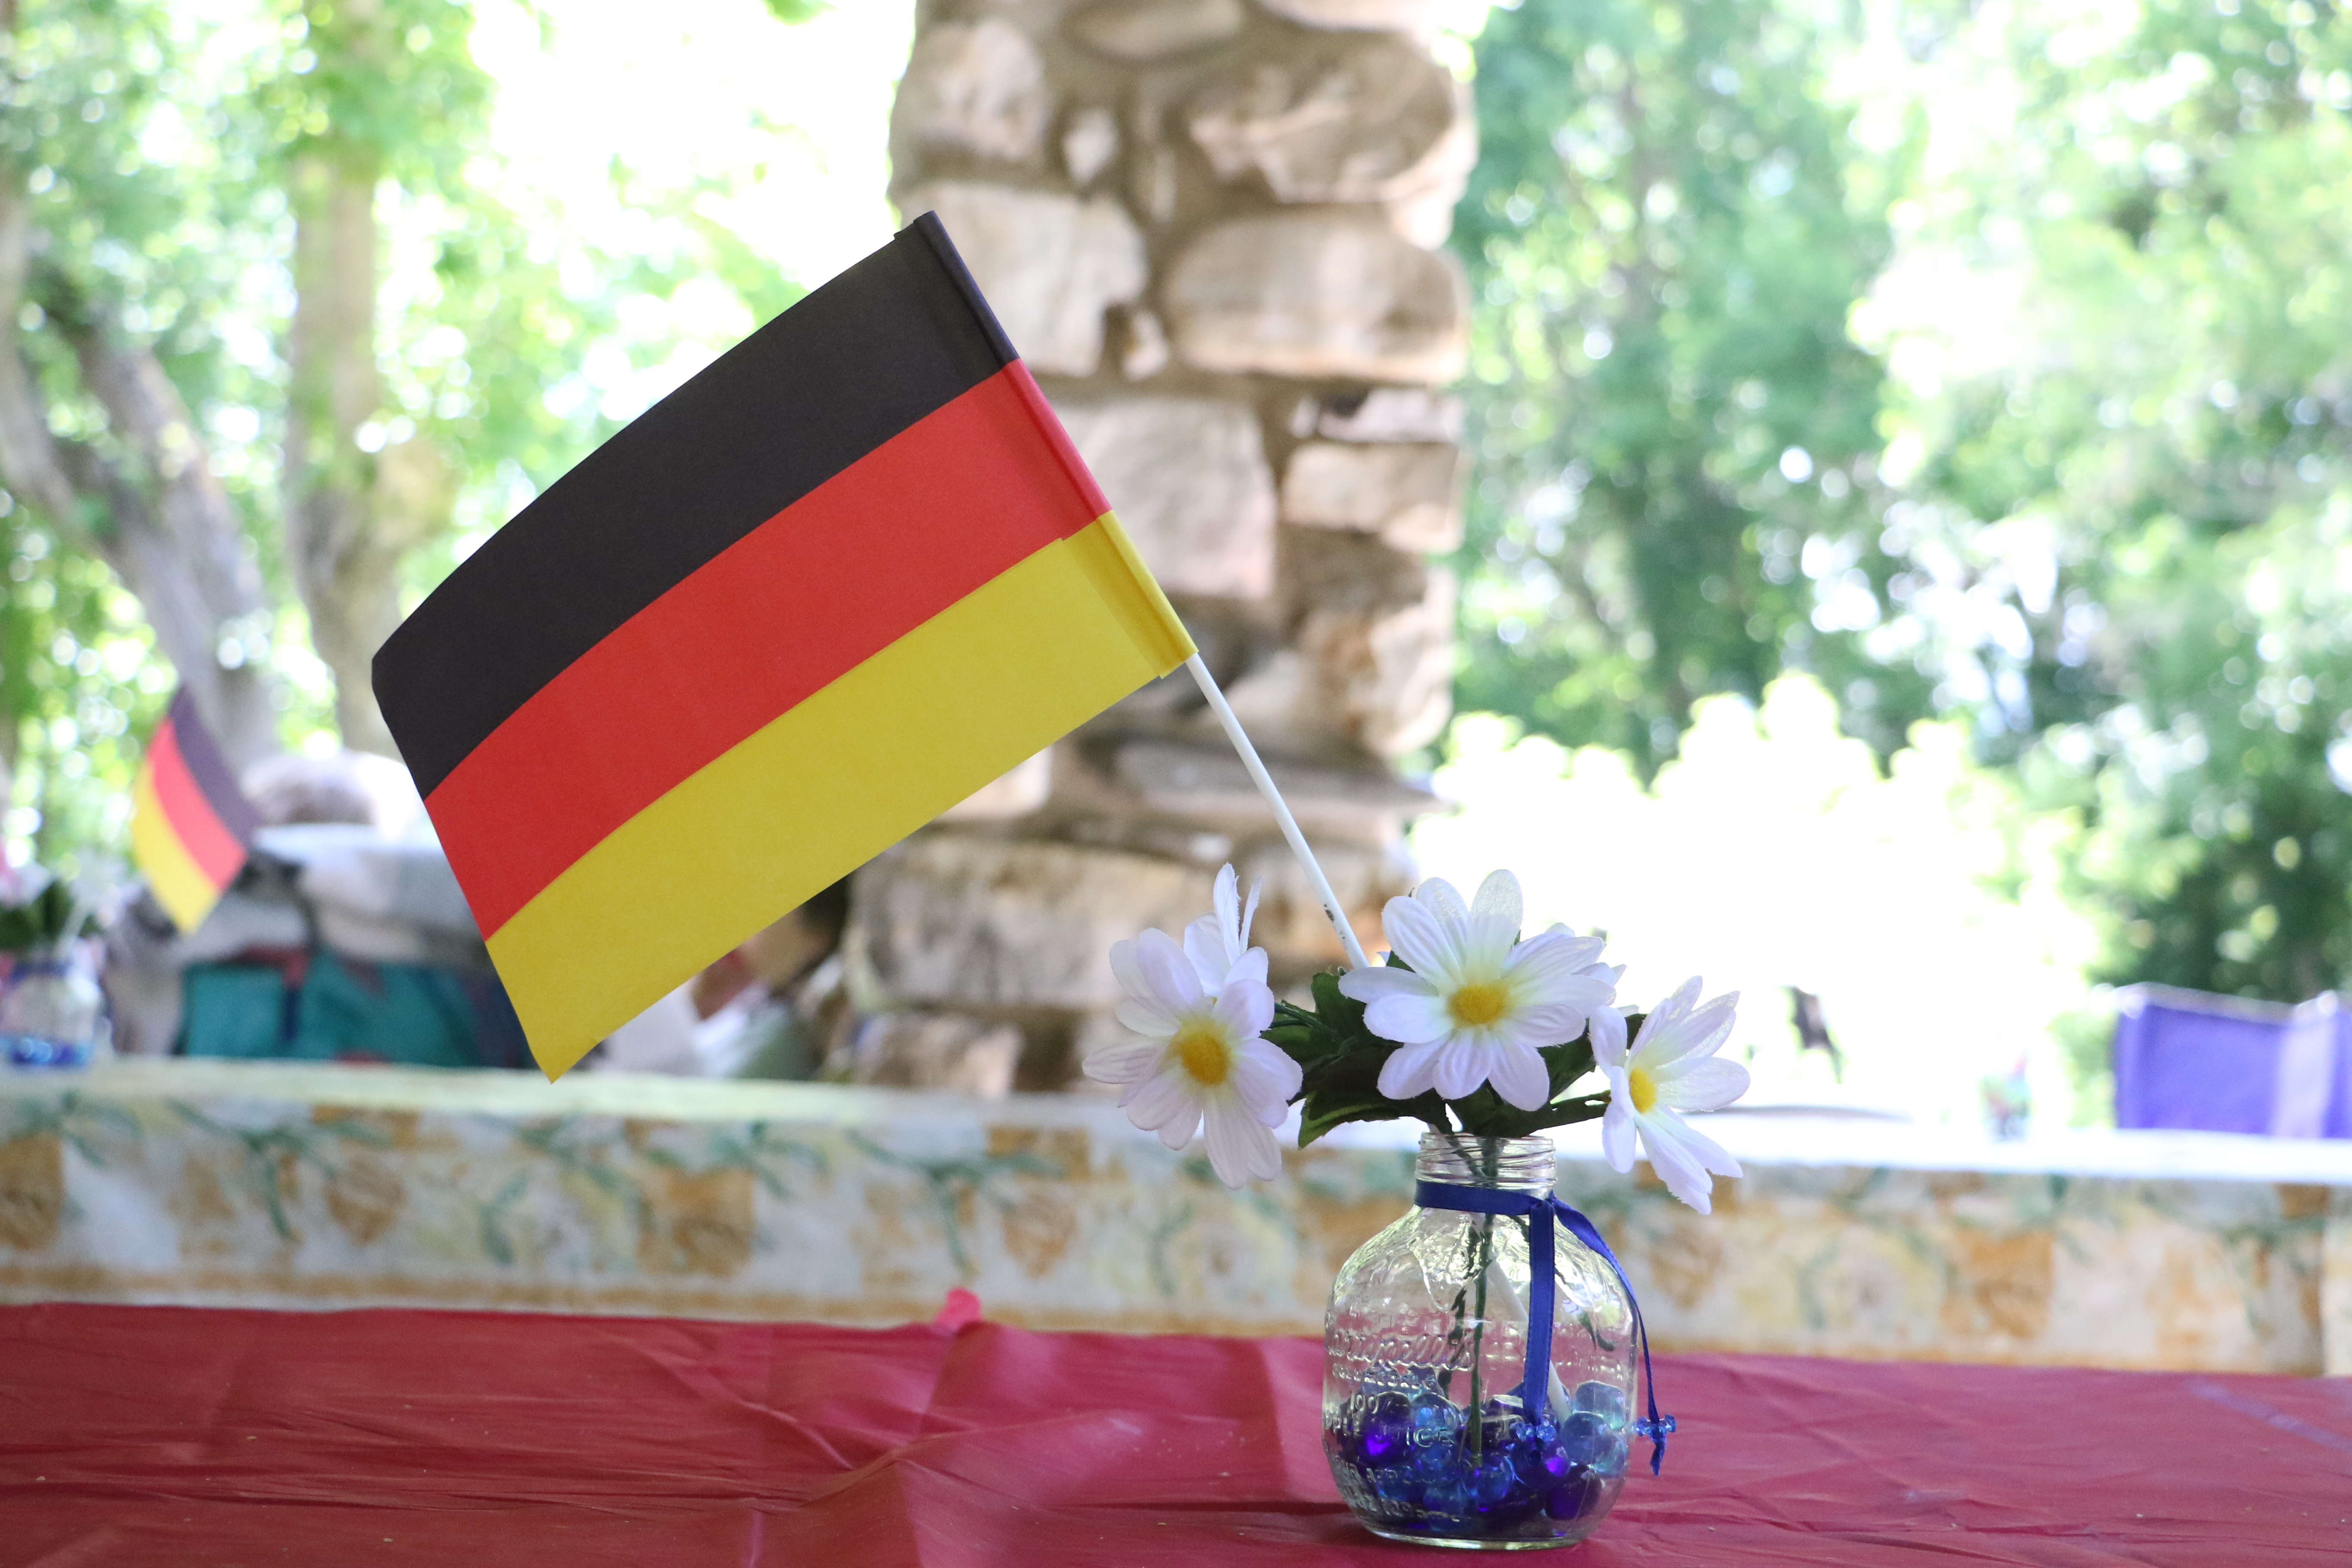 A German flag decoration rests on a table at the German Speaking Ward's annual ward picnic at Washington Terrace Park on July 13, 2019.